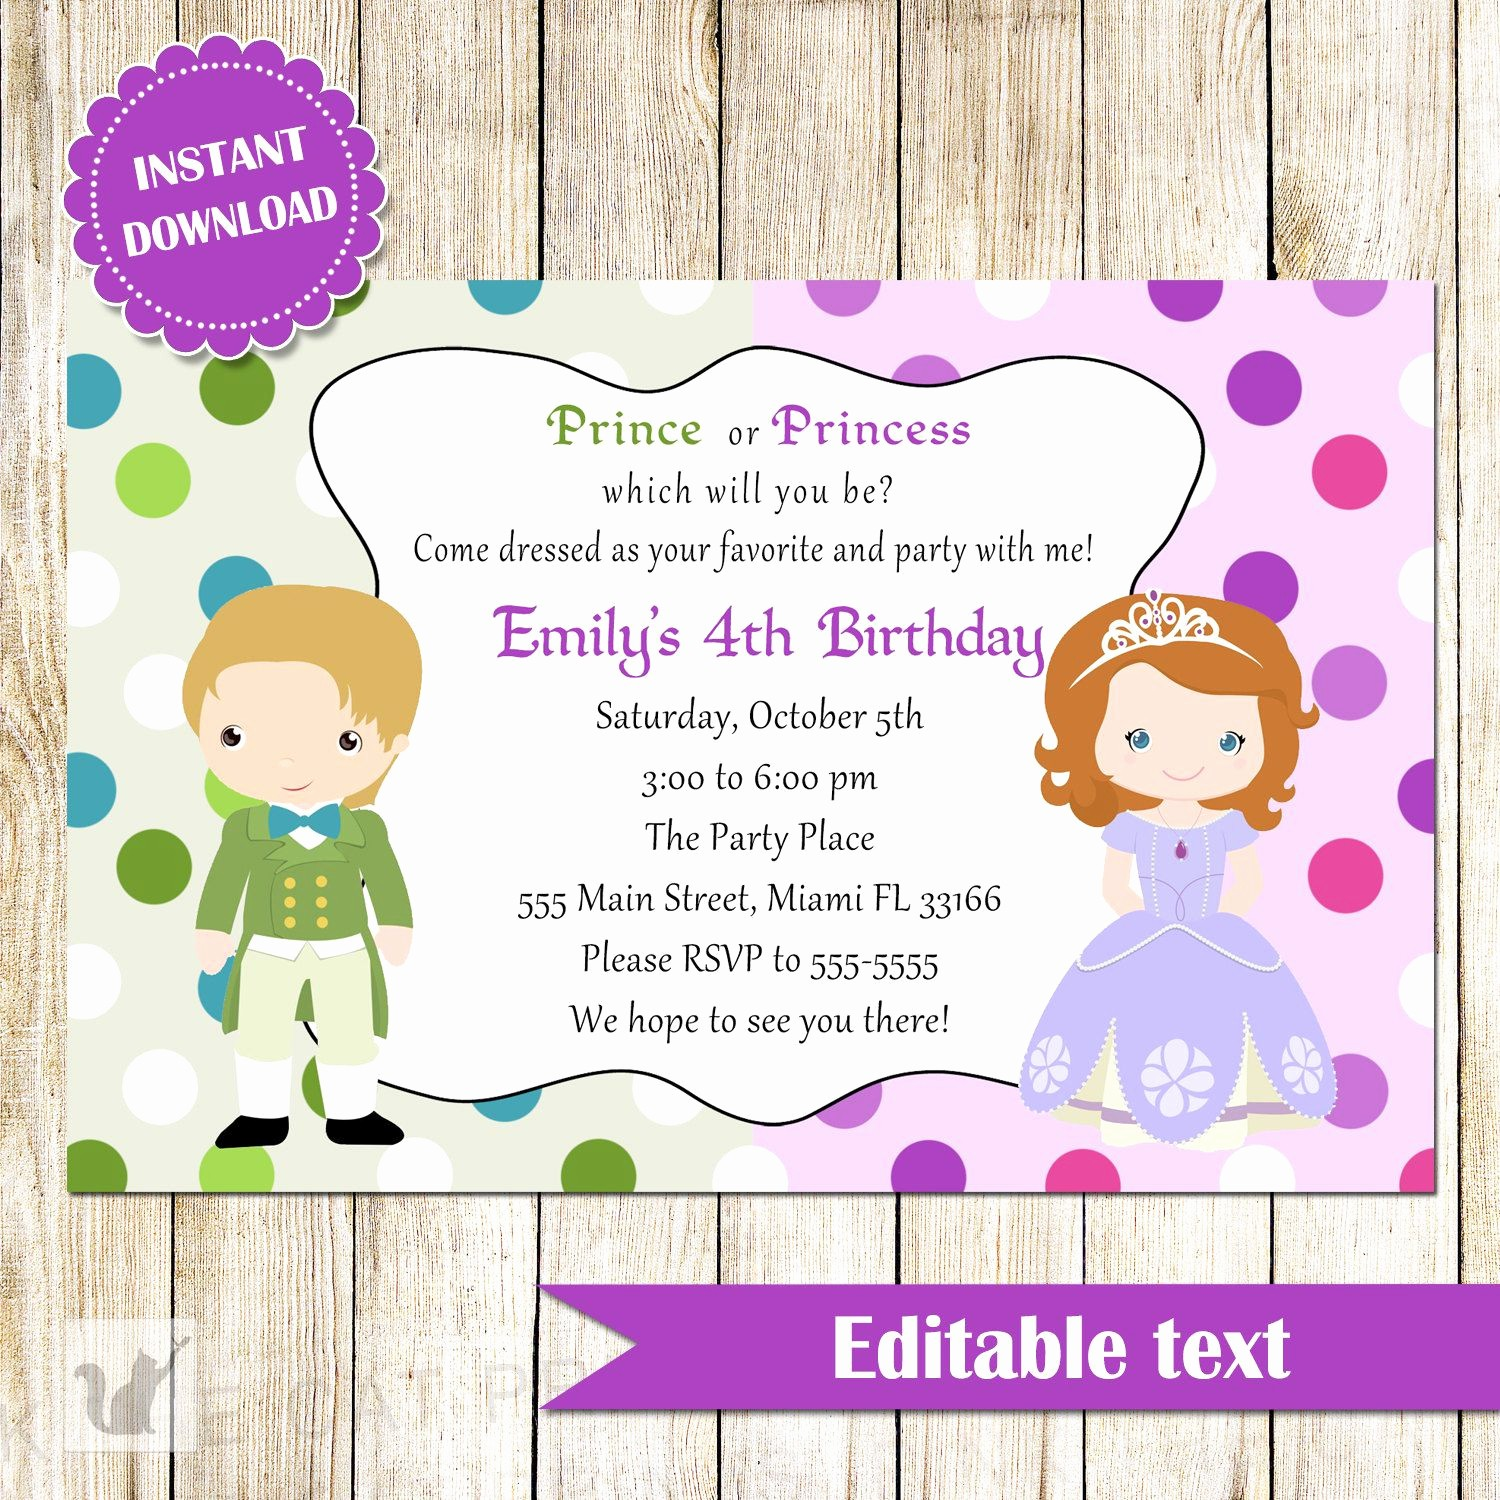 Kids Birthday Party Invite Templates Beautiful Childrens Birthday Party Invites toddler Birthday Party